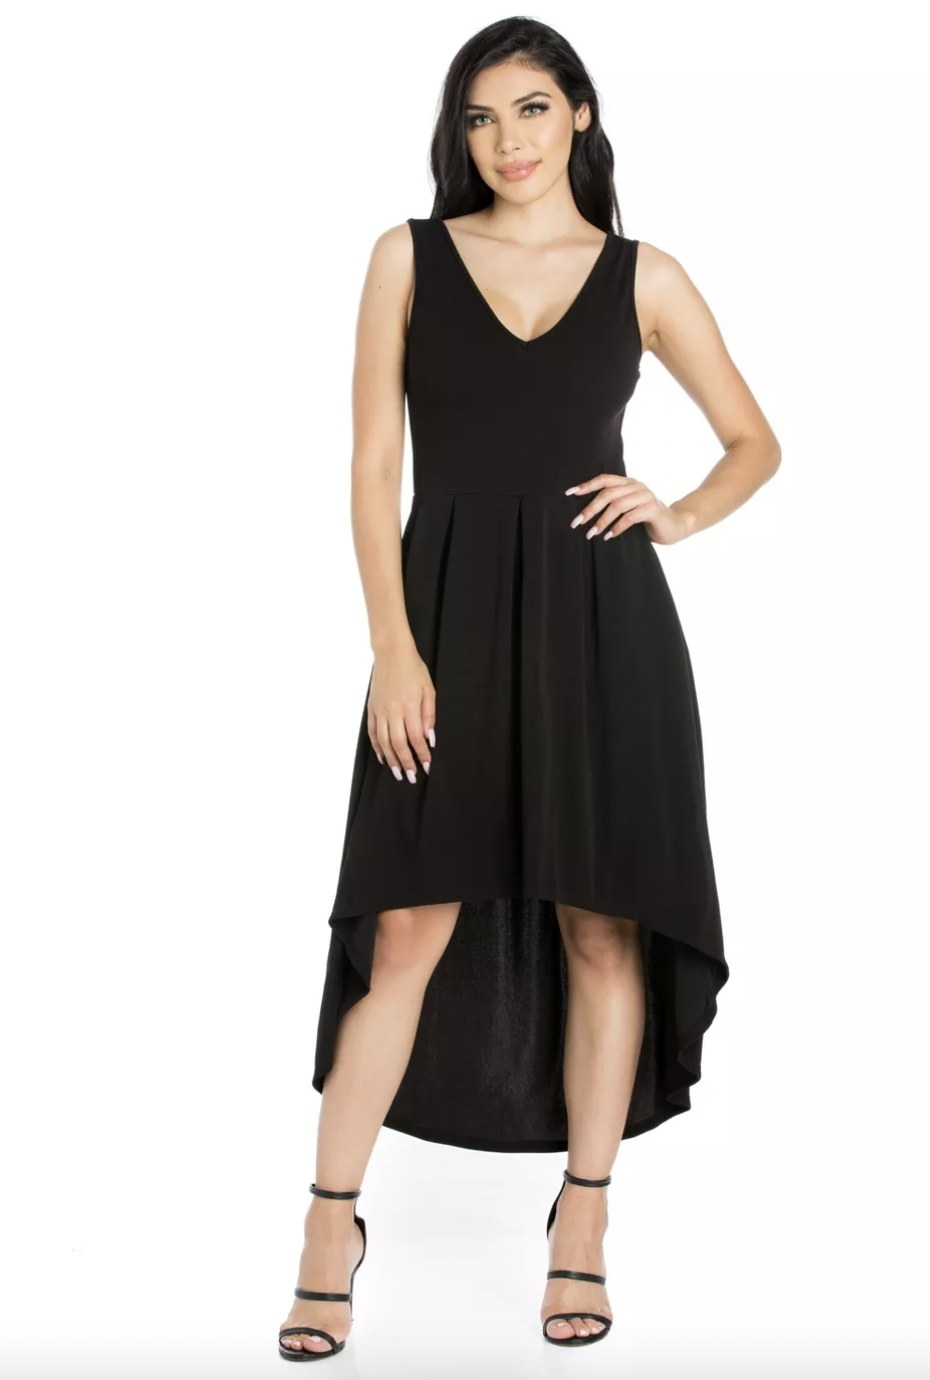 A woman wearing a black dress and sandals